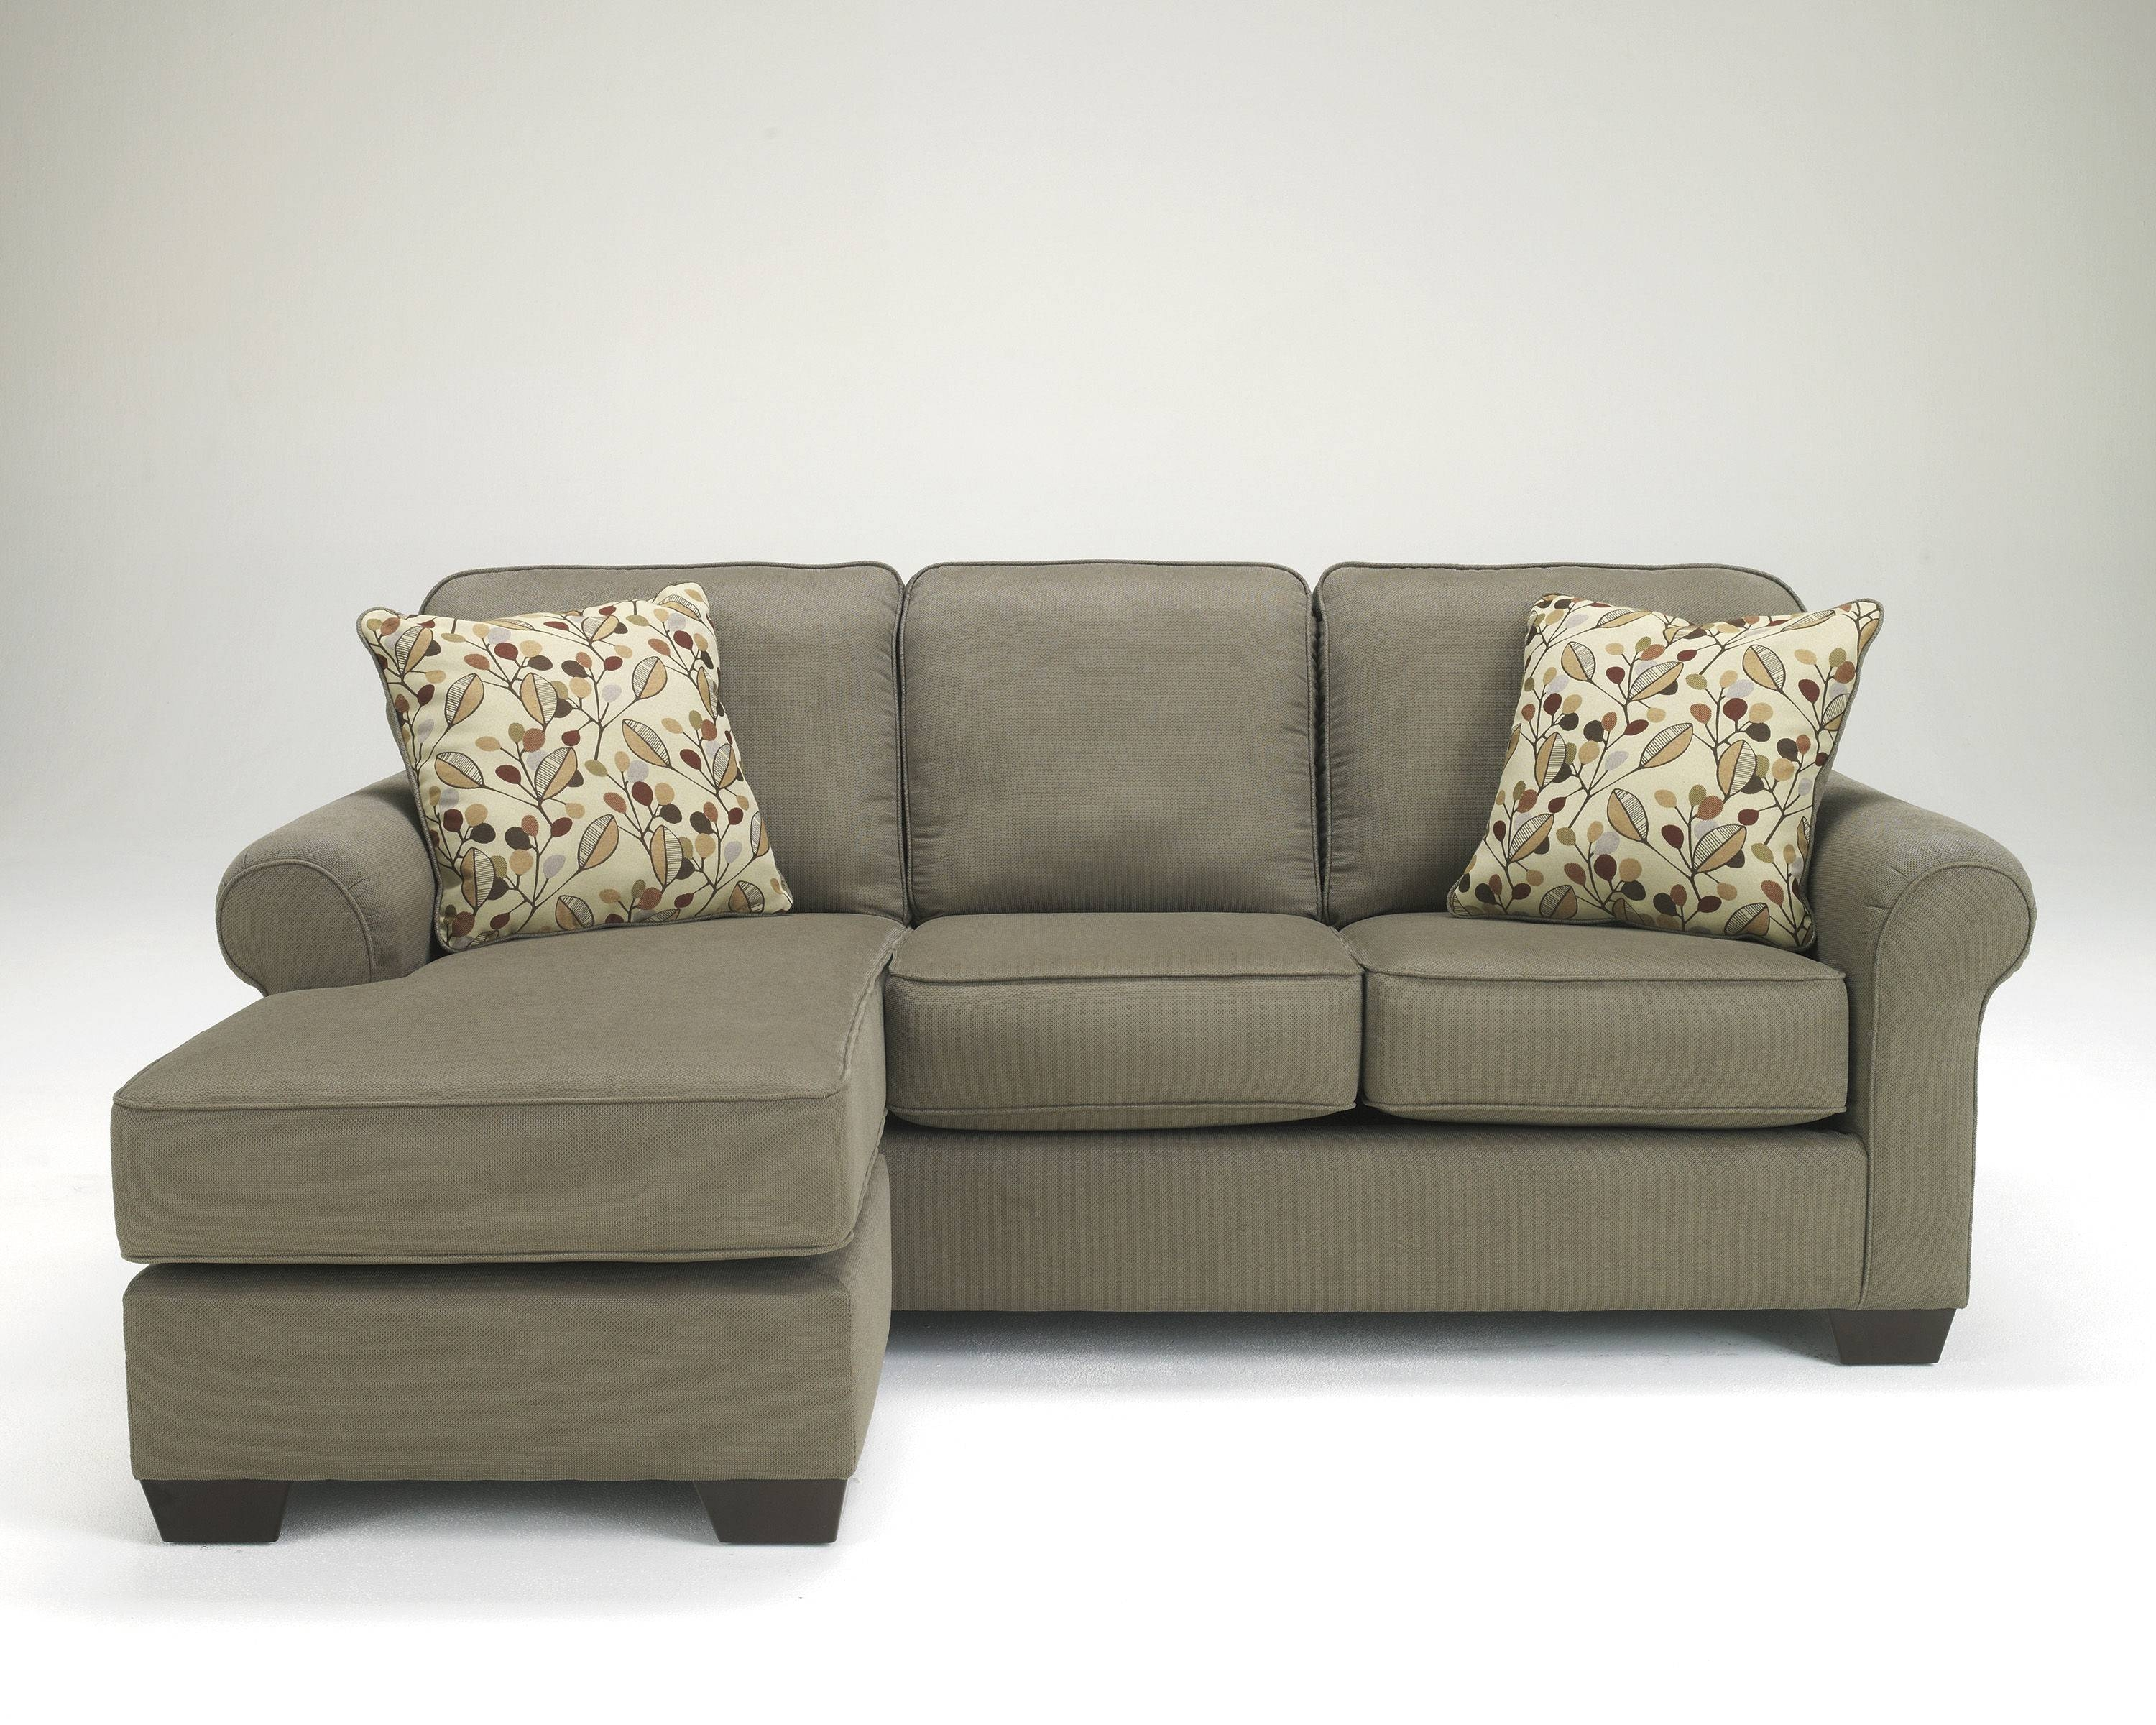 Danely Dusk Polyester Sofa Chaise Sectional | Living Rooms | The within Chaise Sofas (Image 6 of 15)